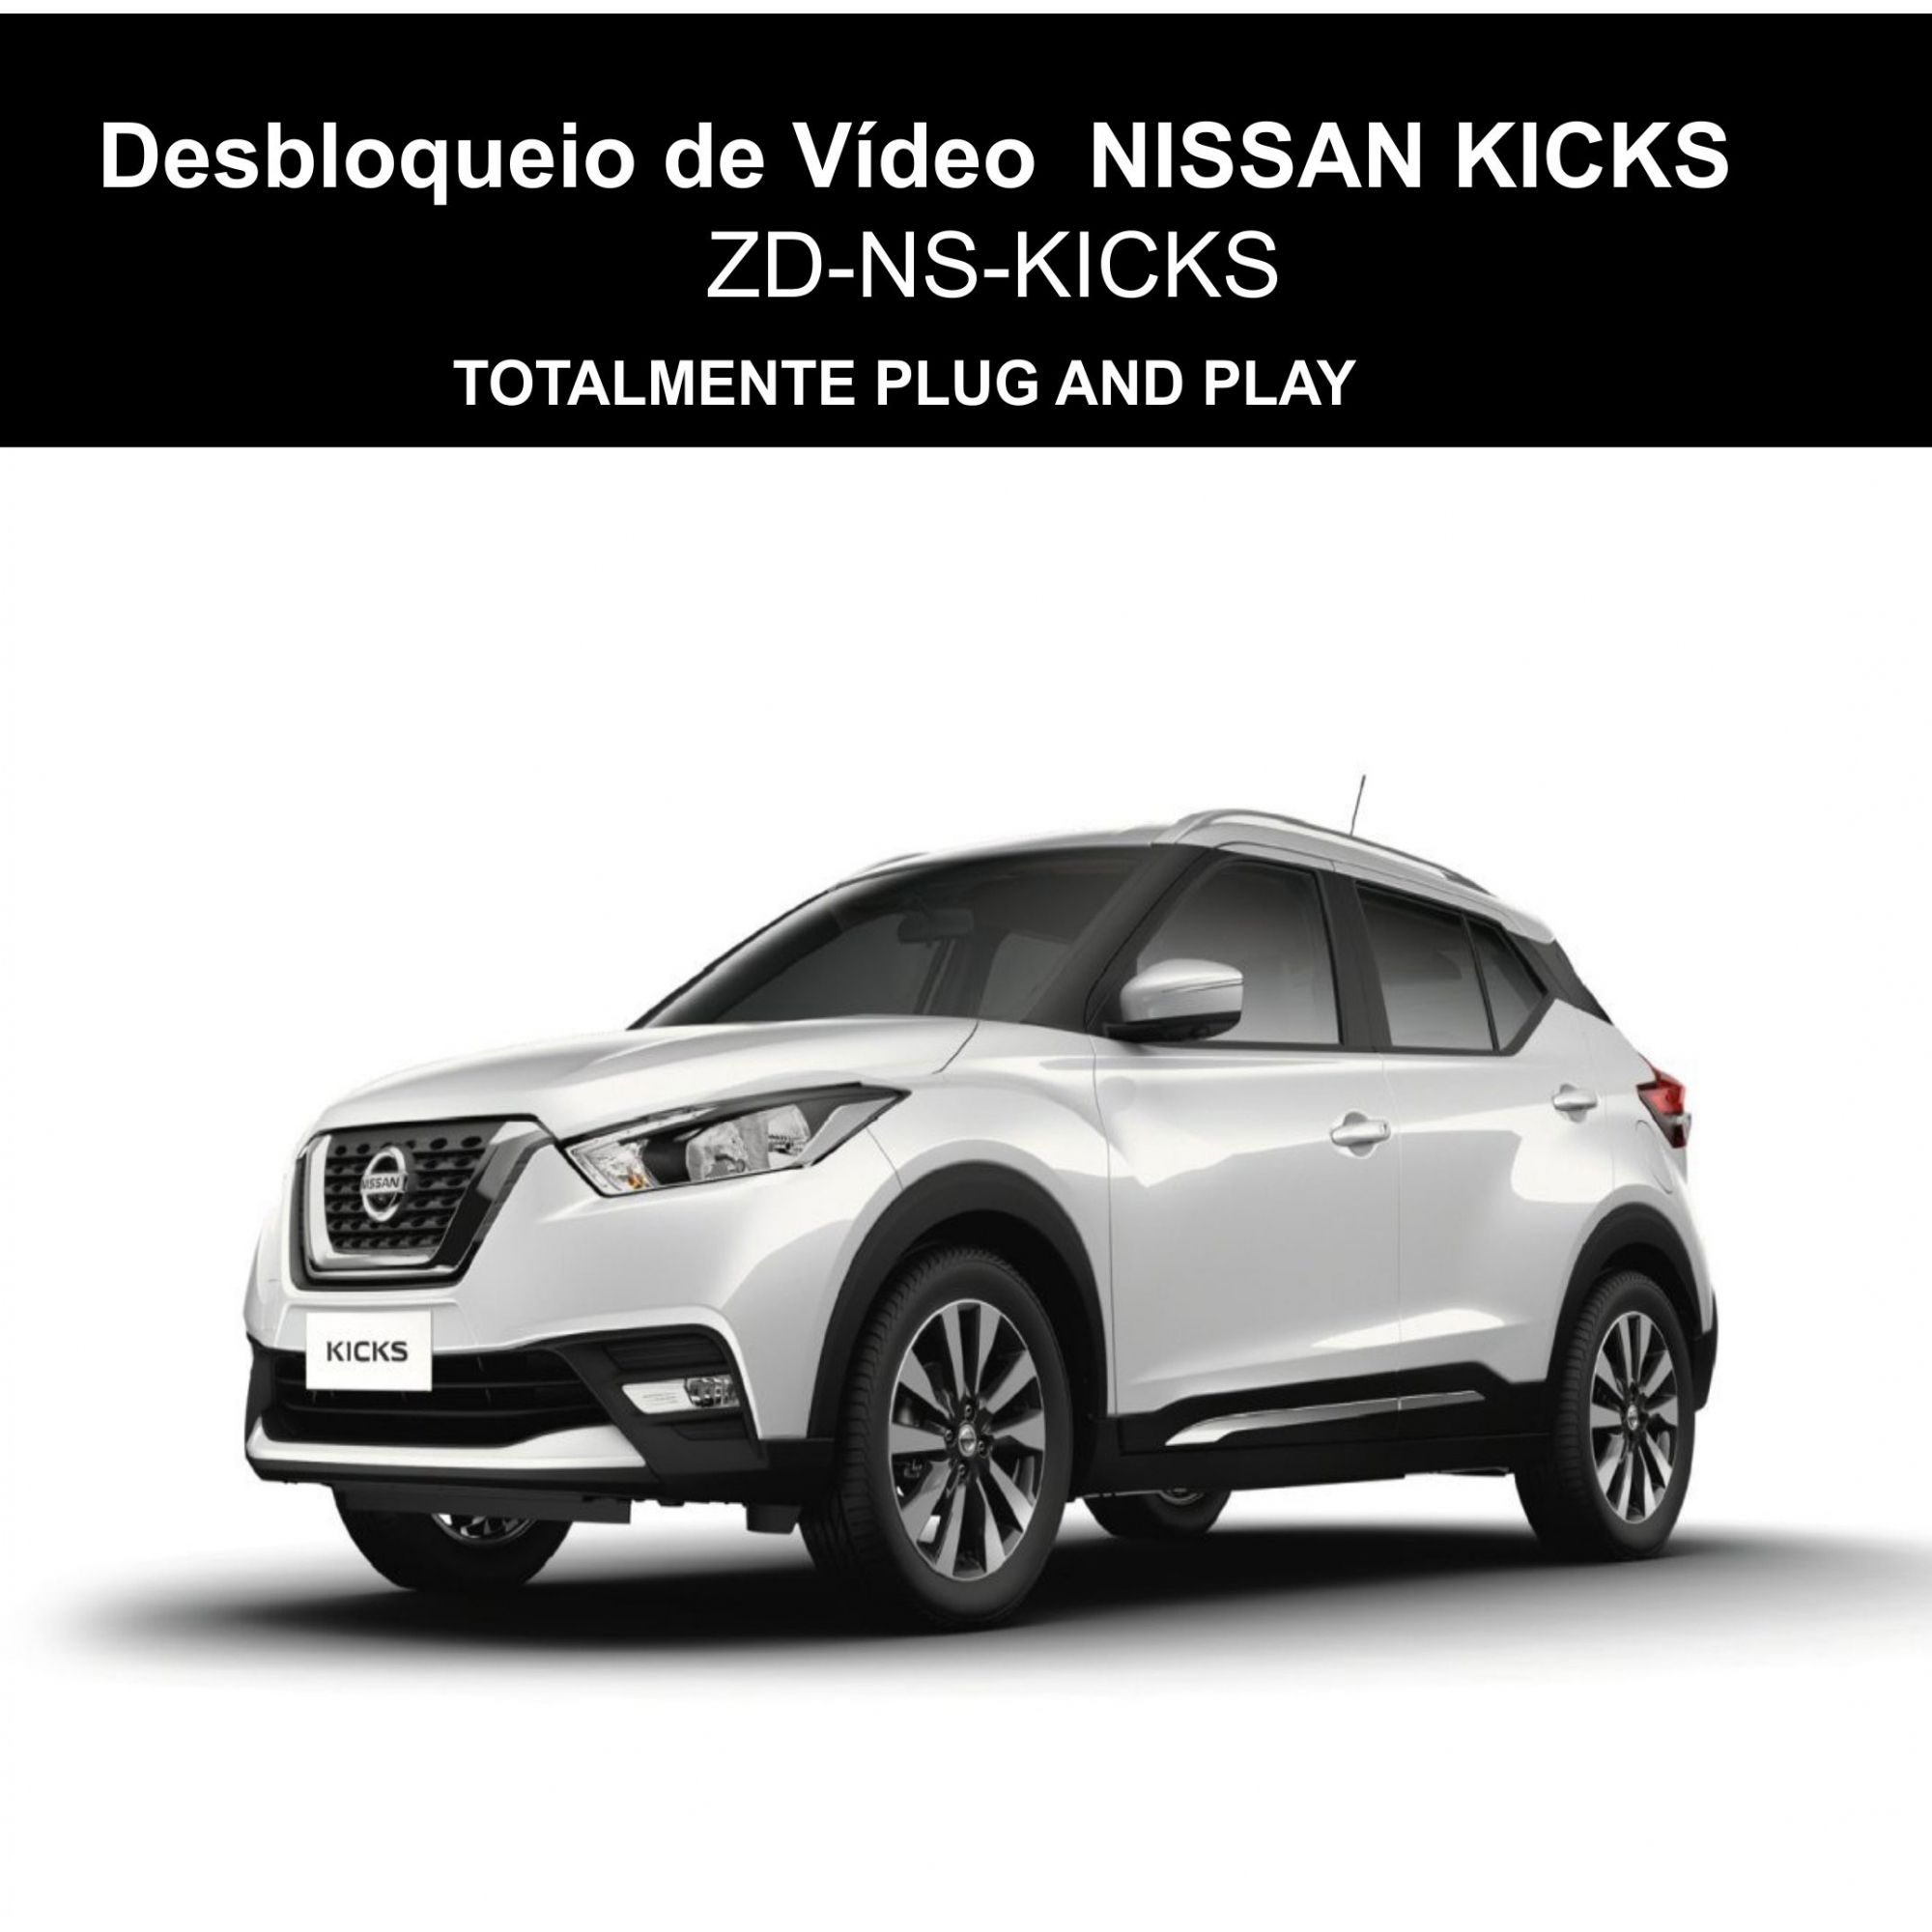 Interface Desbloqueio de Vídeo em Movimento Nissan Kicks Zendel ZD-NS-KICKS